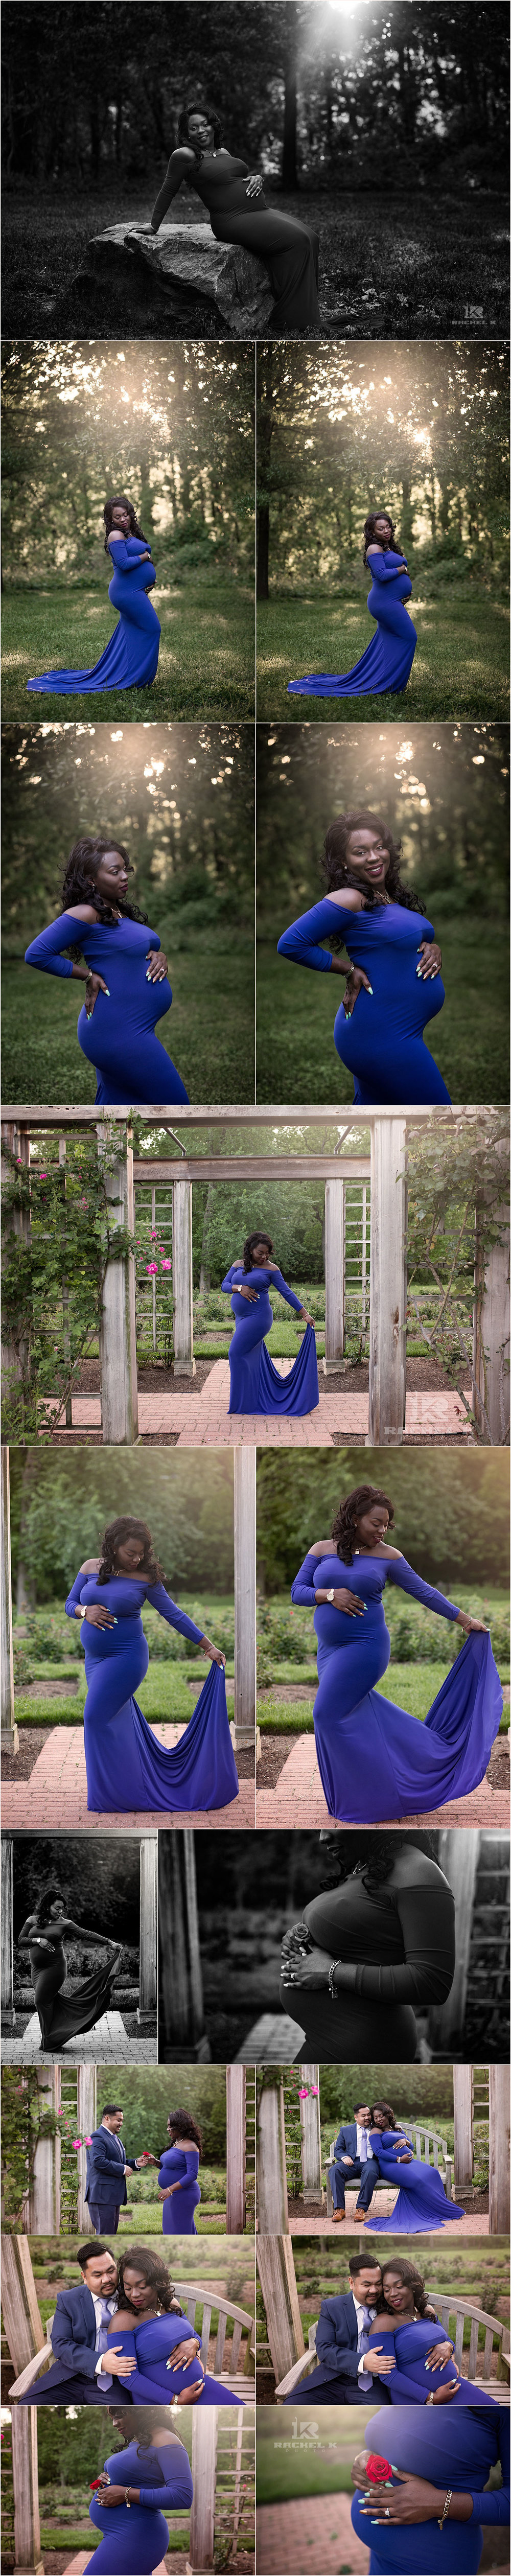 Arlington blue dress maternity session in rose garden by Rachel K Photo